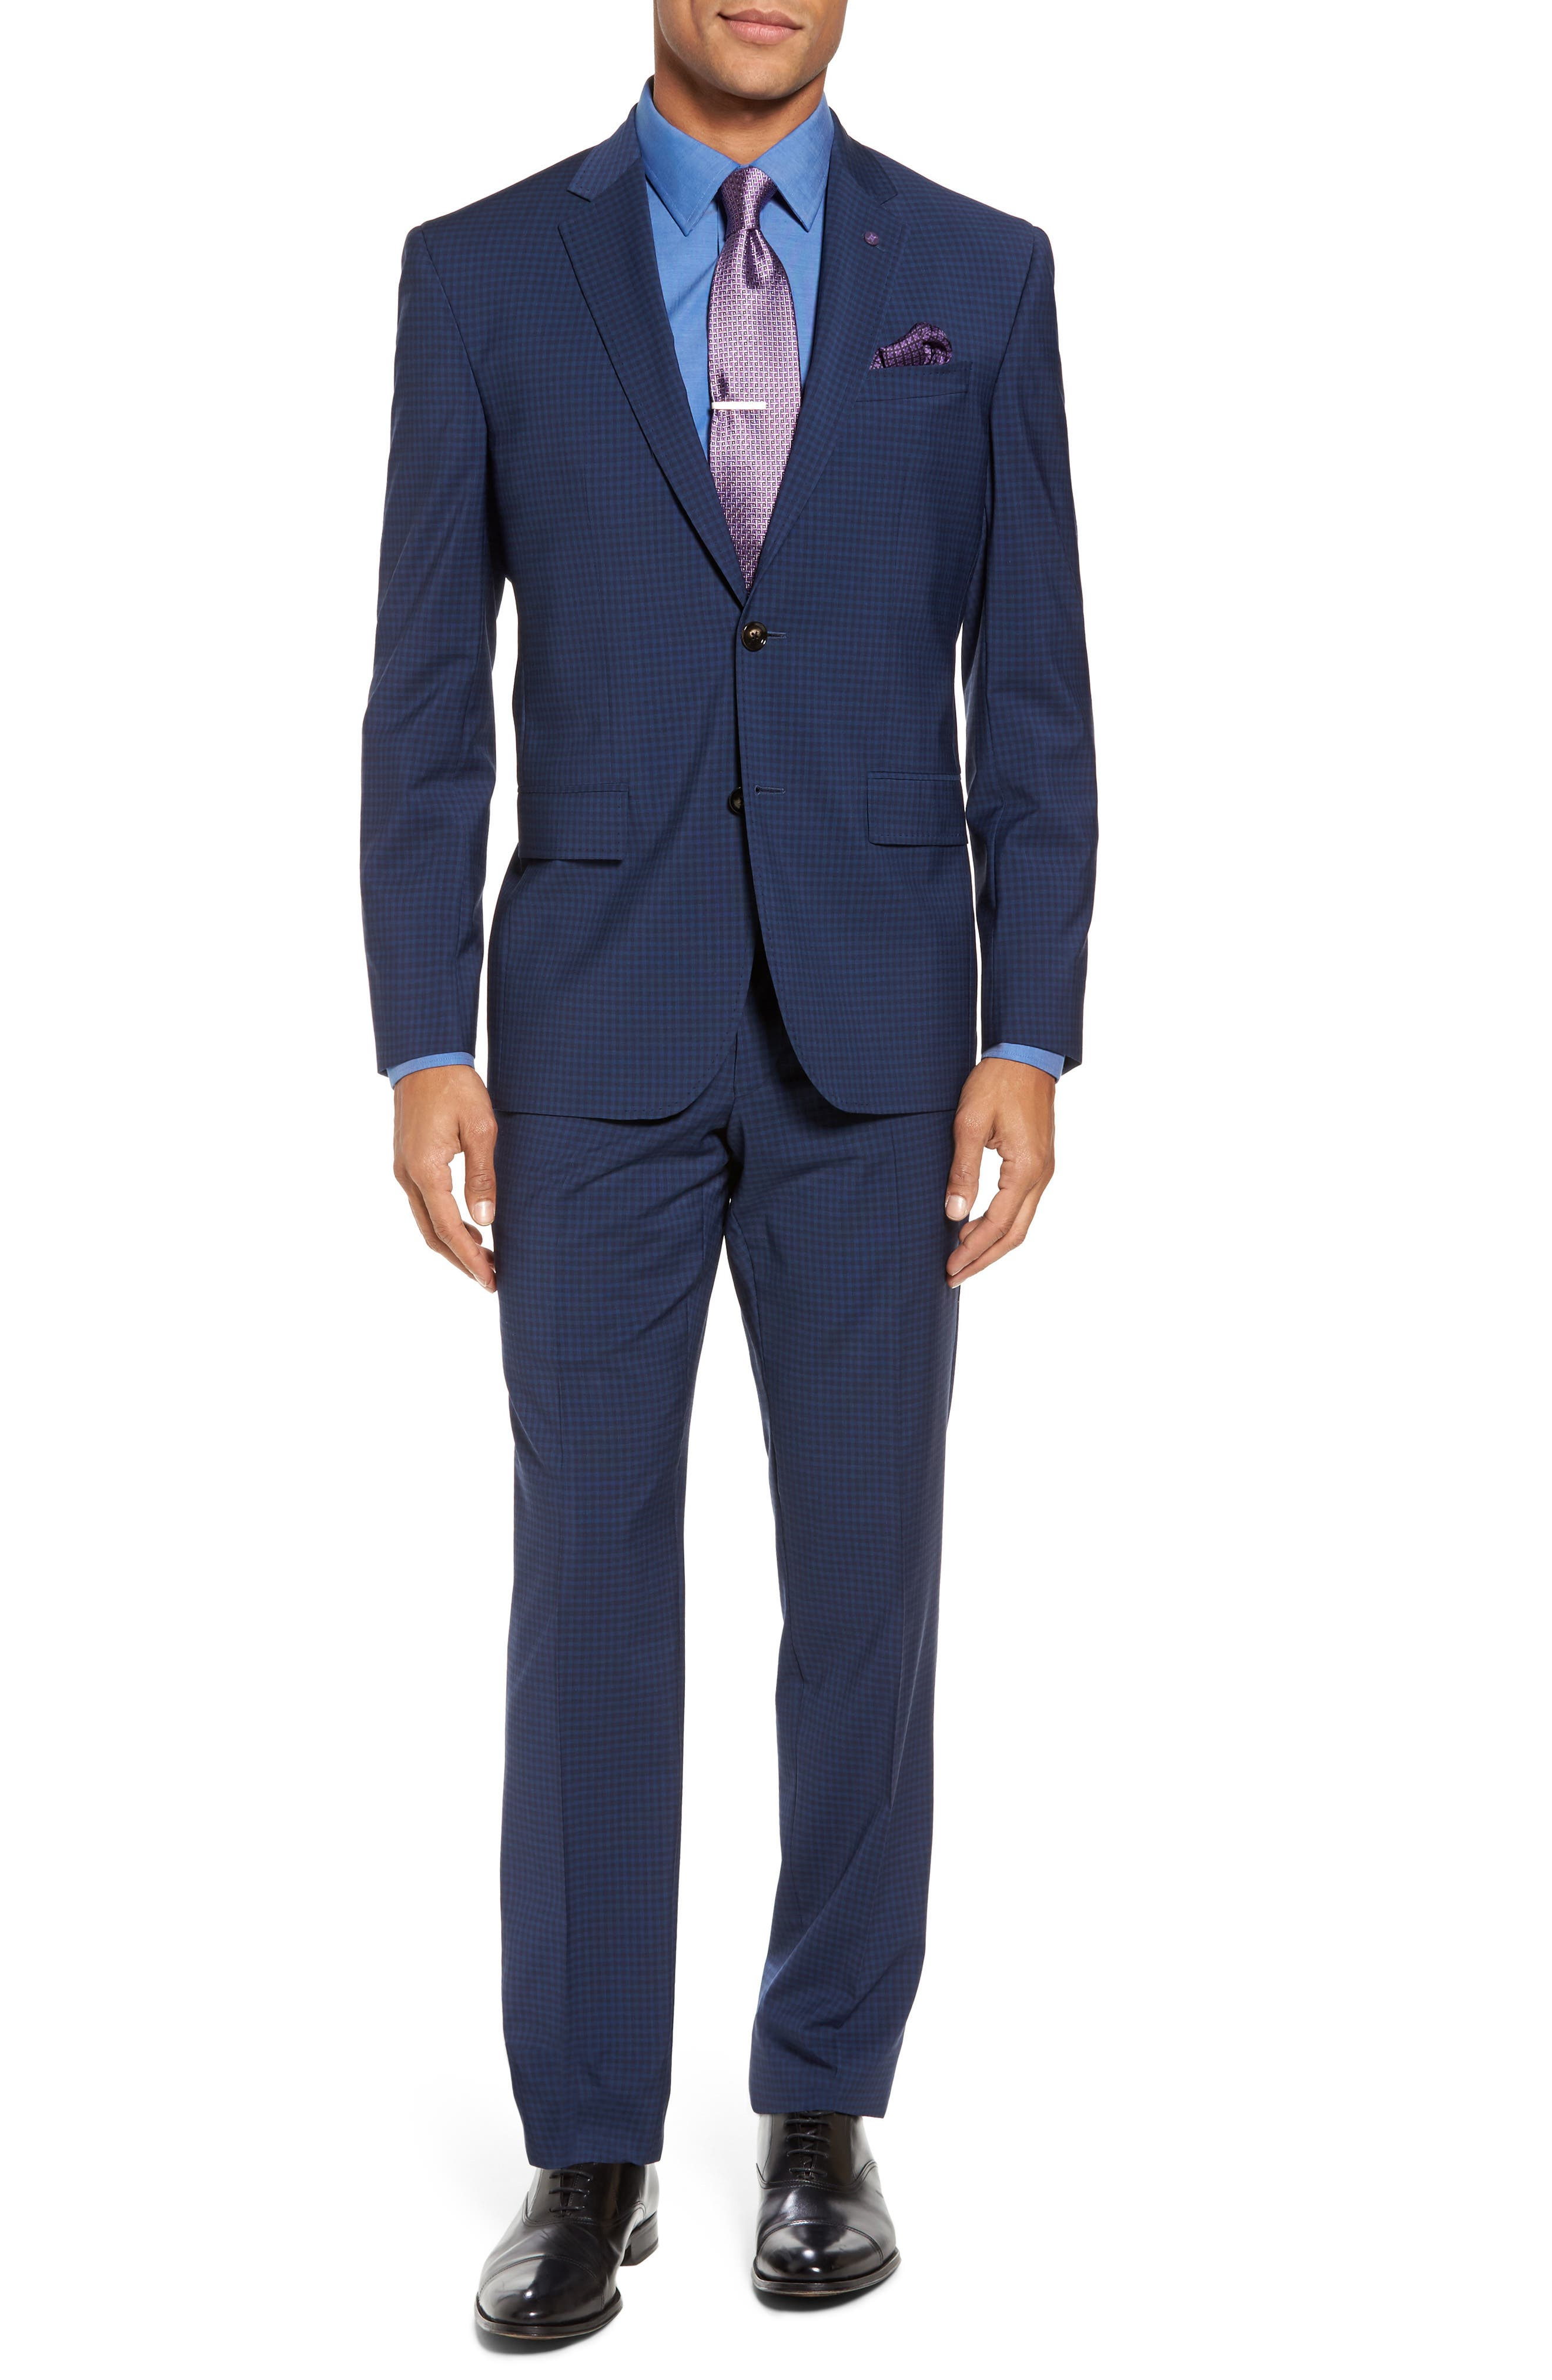 Jay Trim Fit Stretch Wool Suit,                             Main thumbnail 1, color,                             Blue